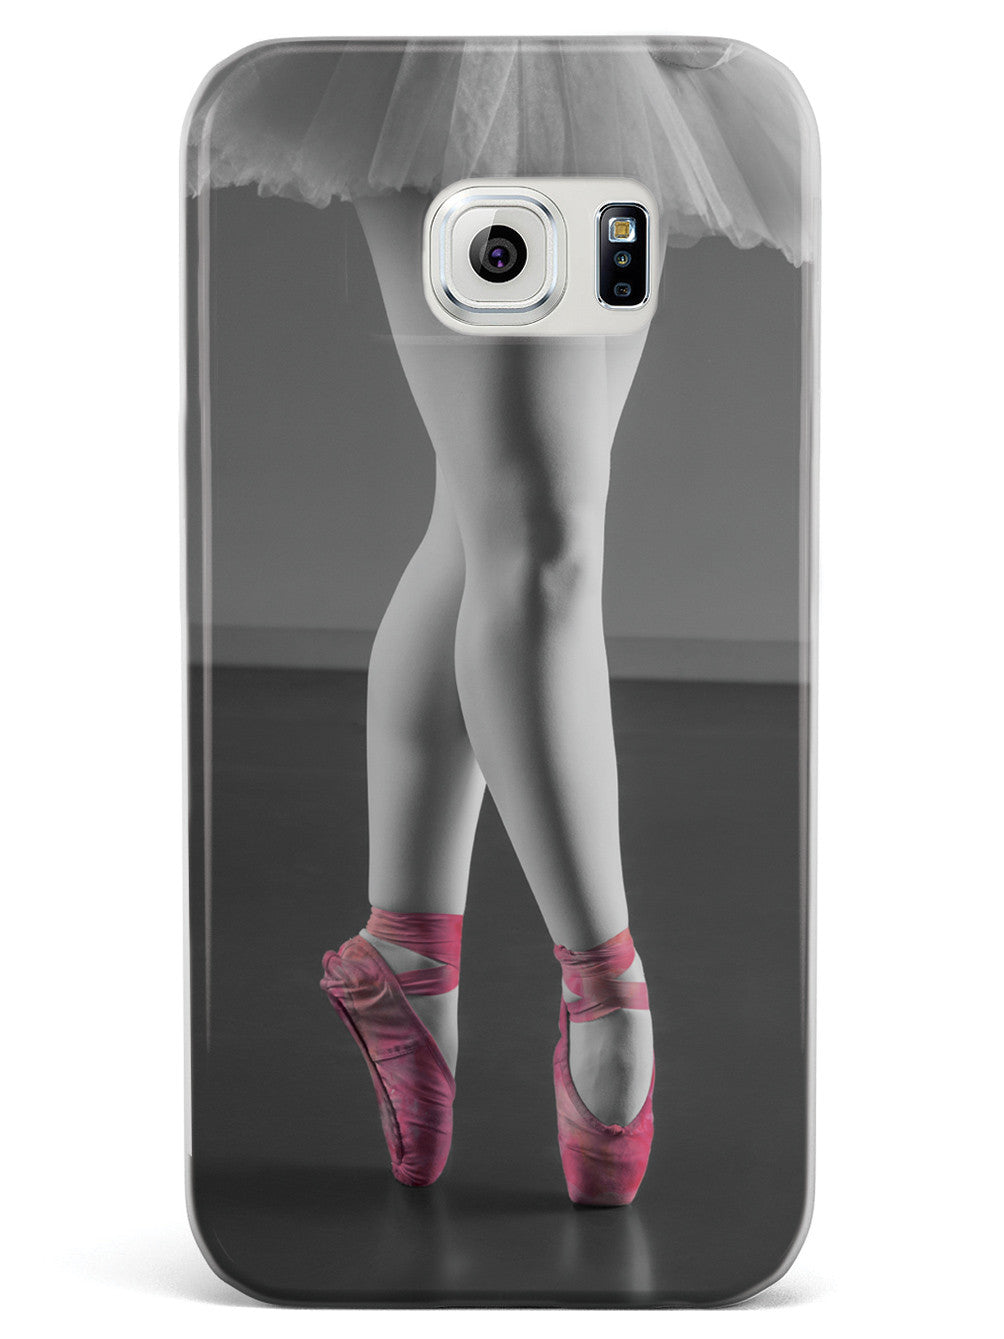 Ballerina Slippers Case